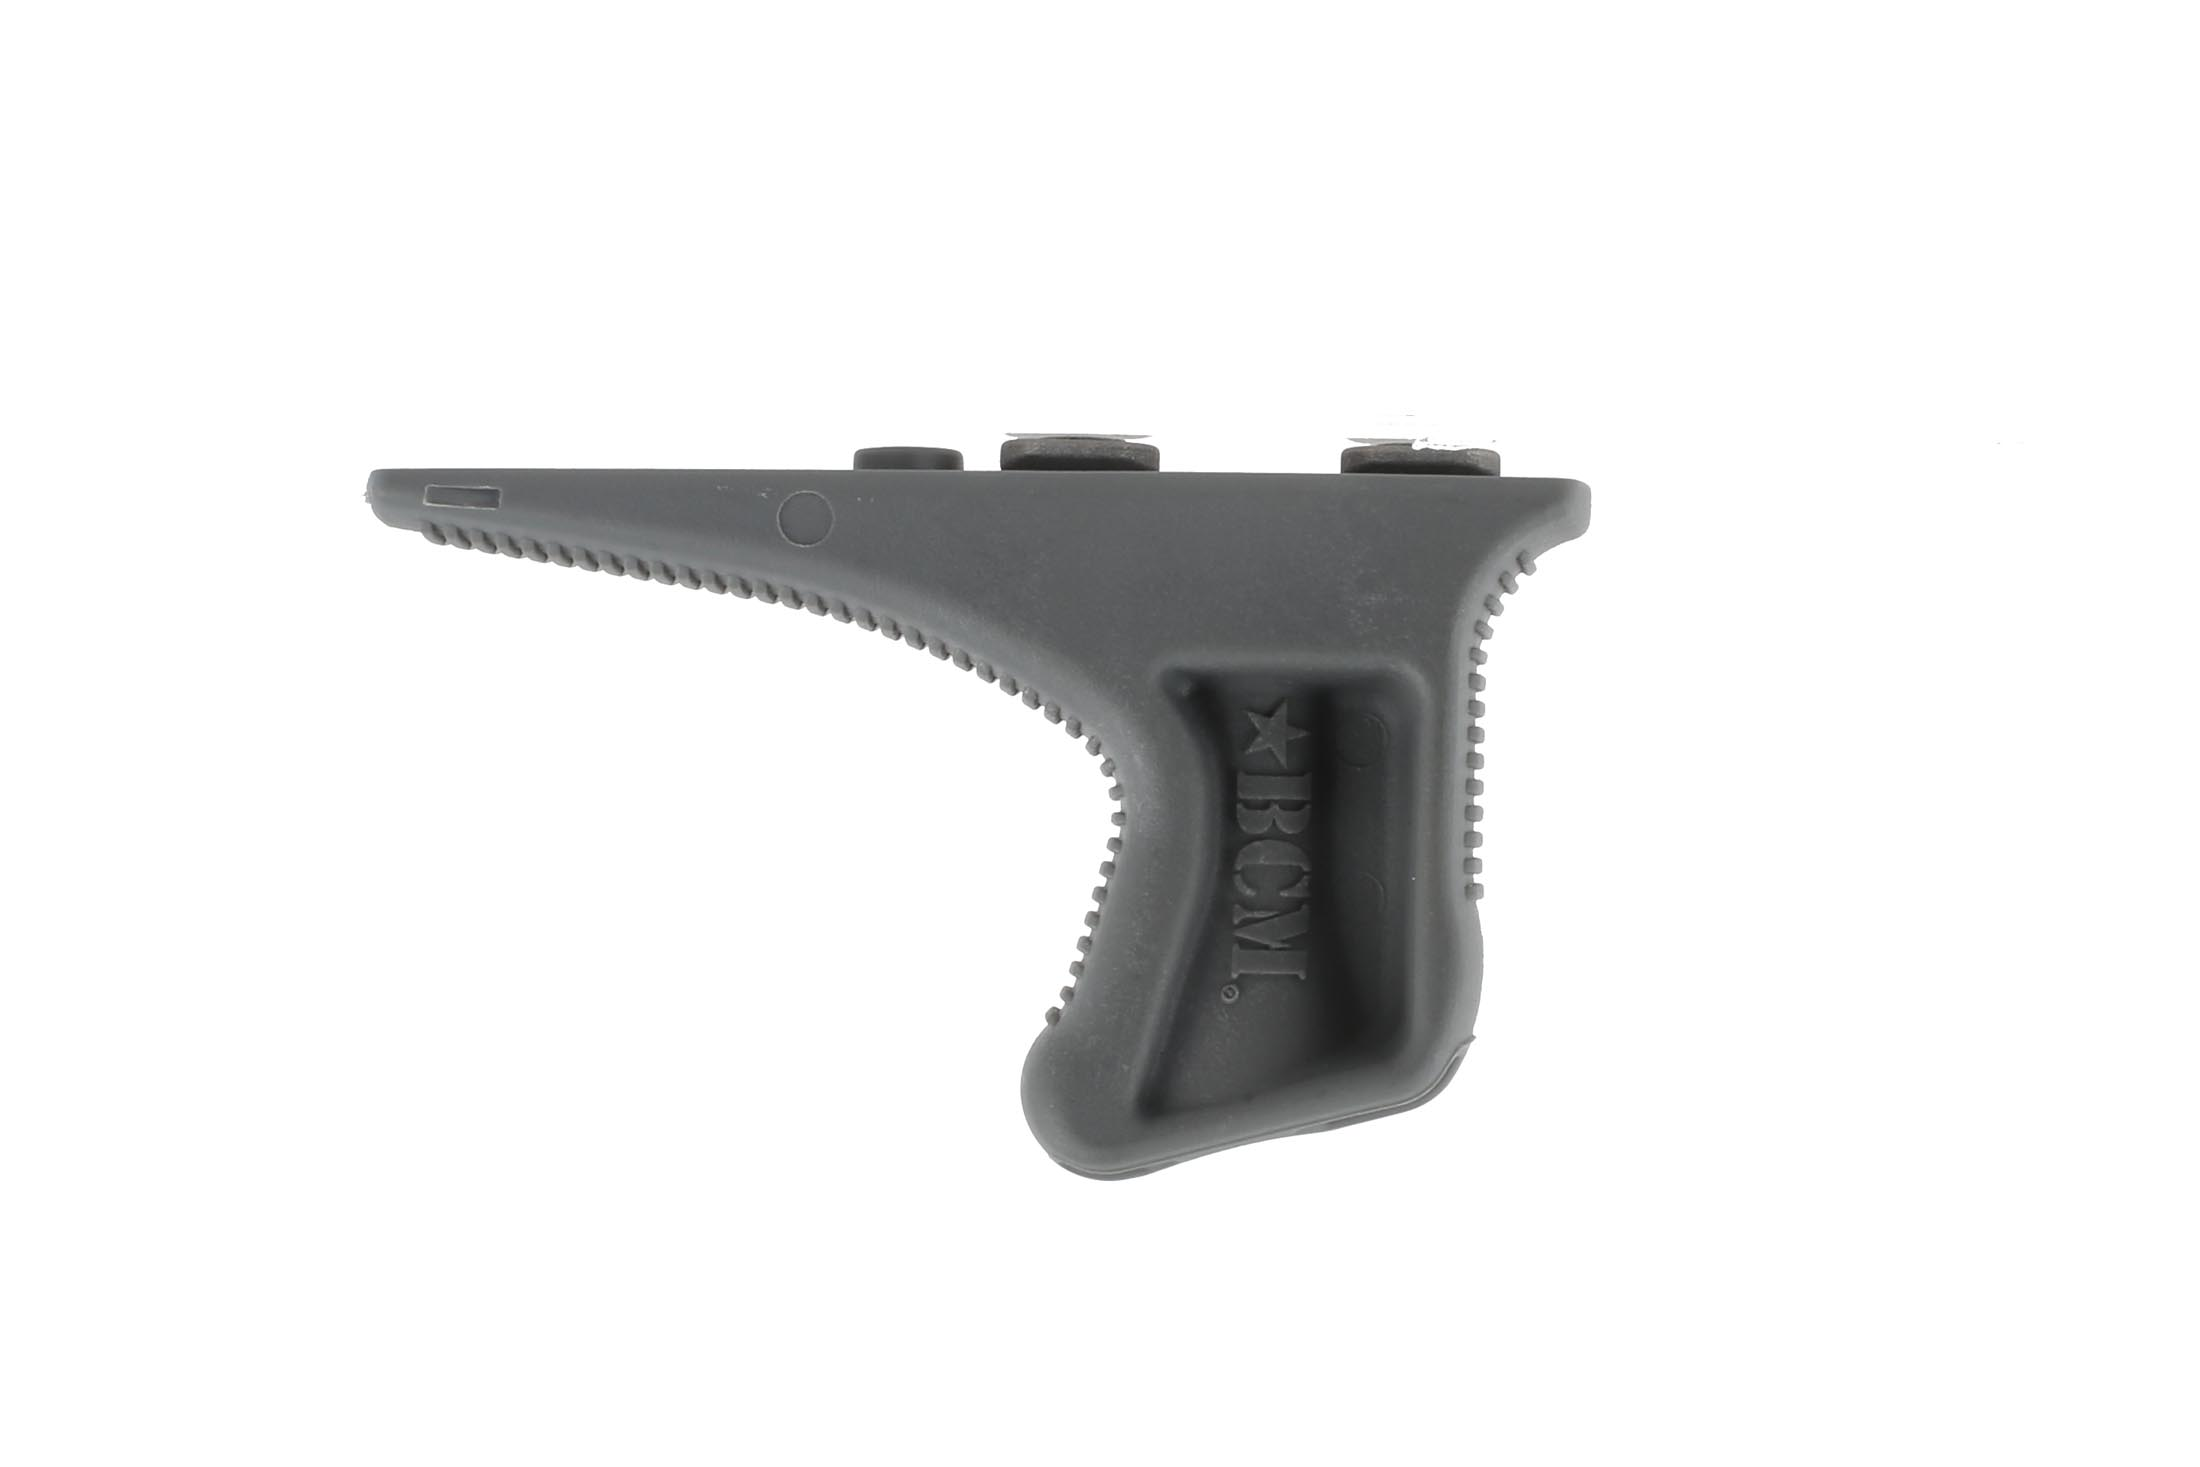 The Bravo Company BCM Gunfighter KAG Keymod in gray has a textured no slip grip